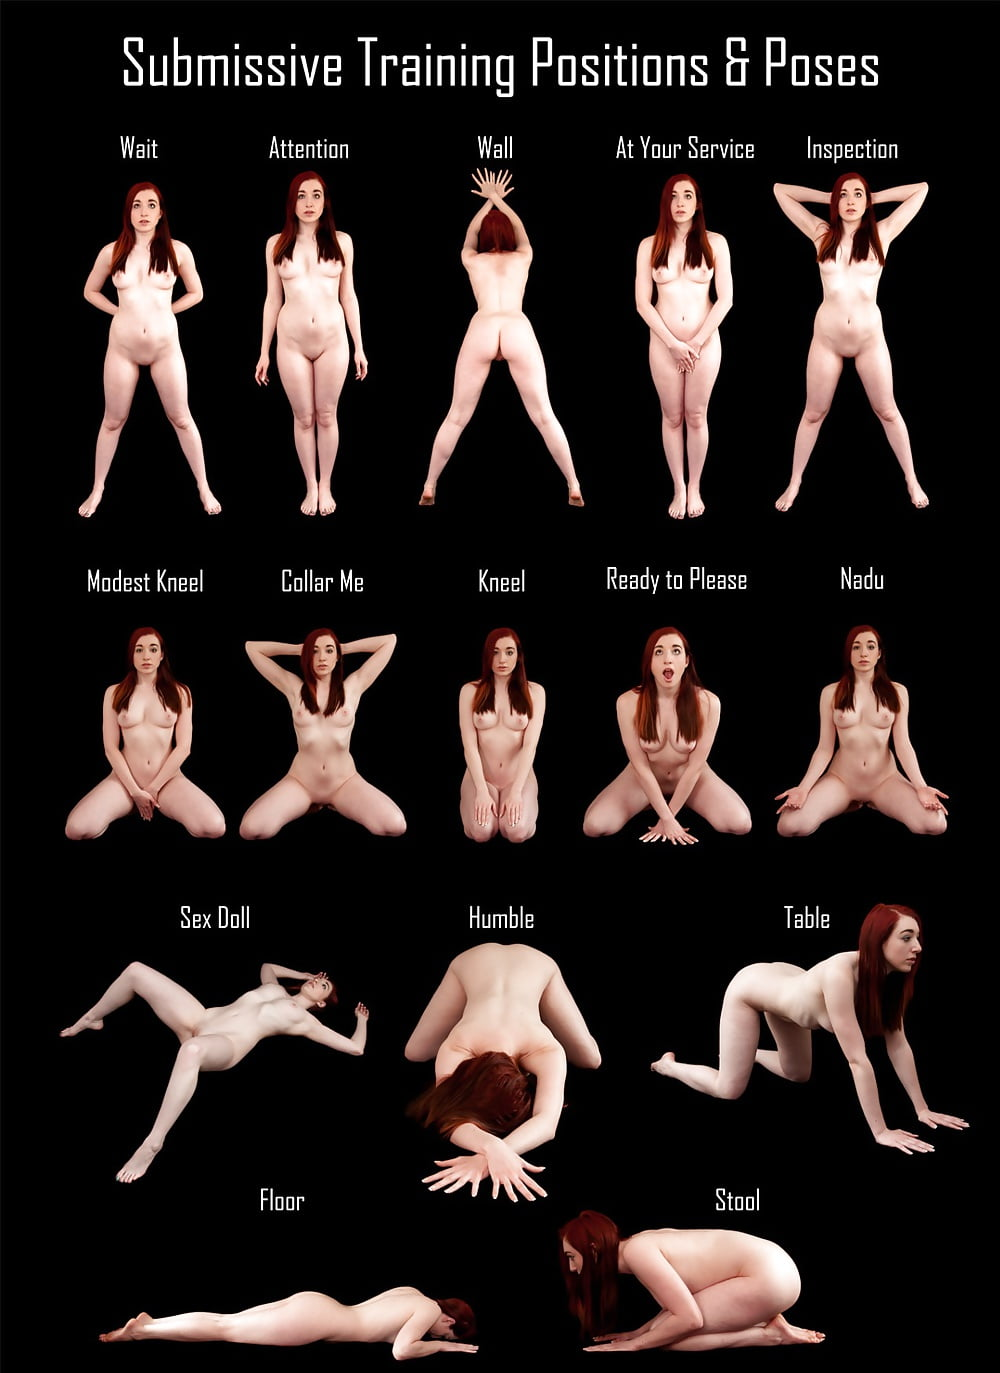 Pics submissive positions